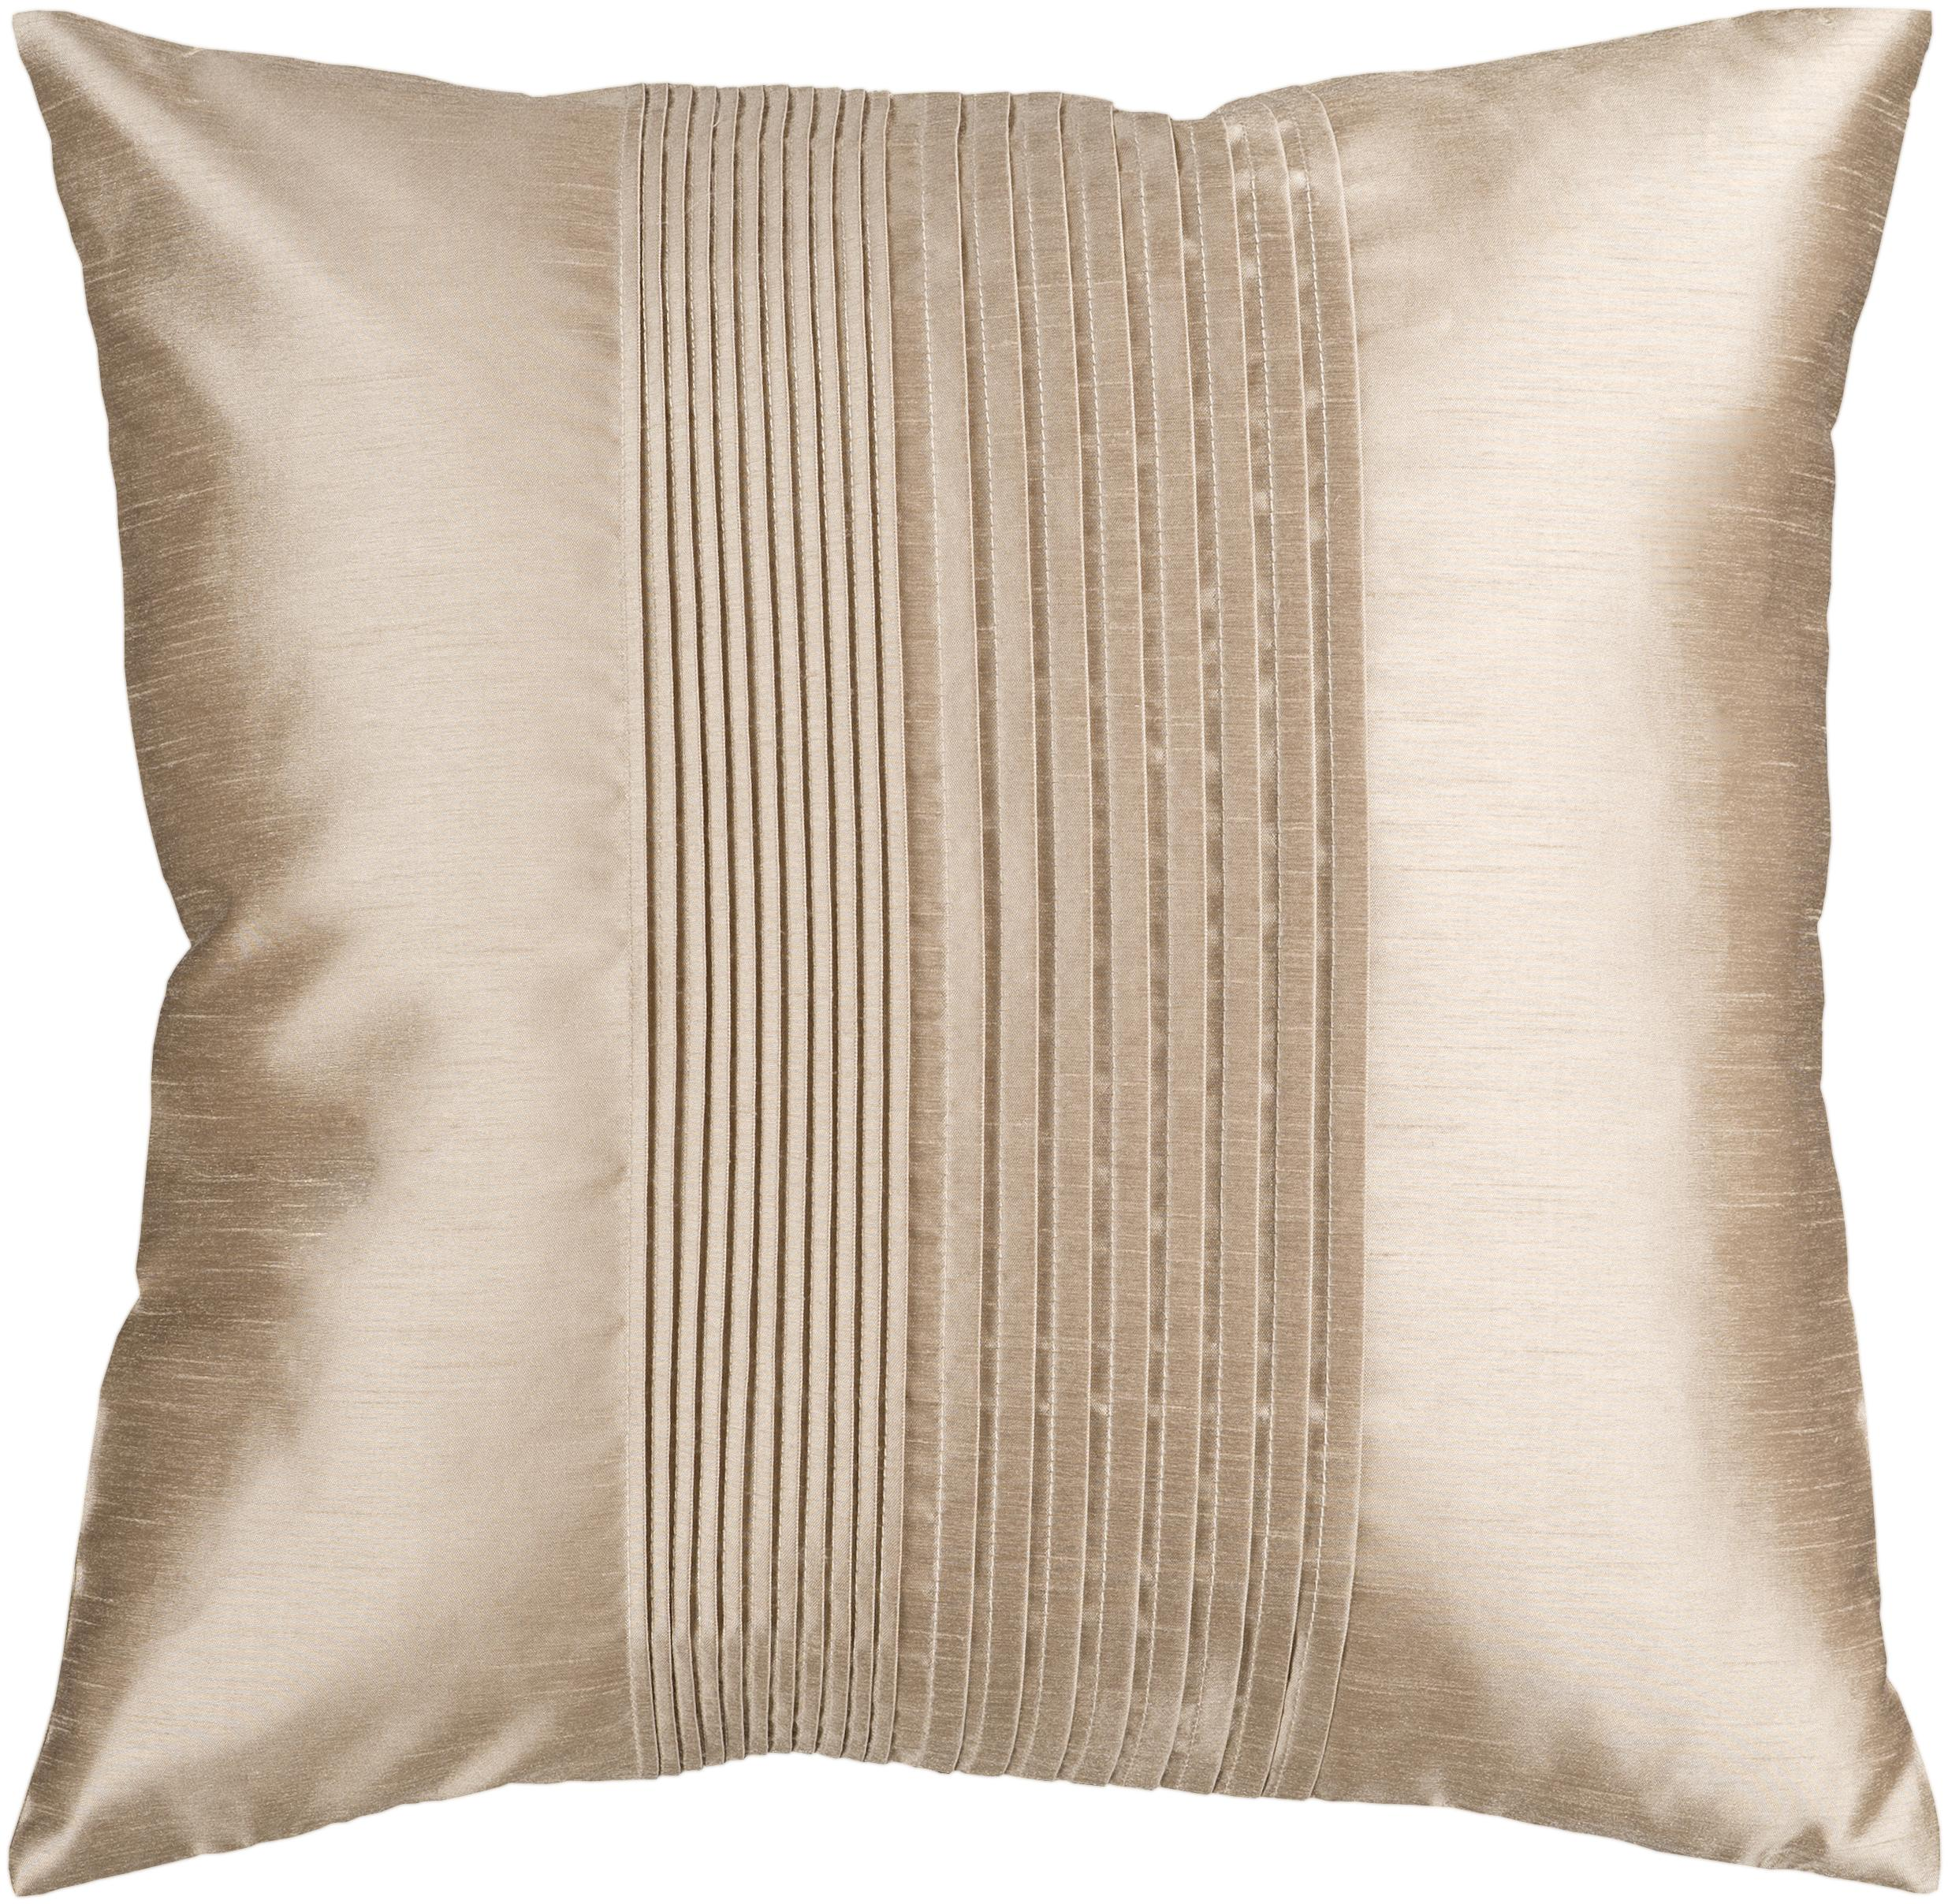 "Surya Pillows 18"" x 18"" Pillow - Item Number: HH019-1818P"